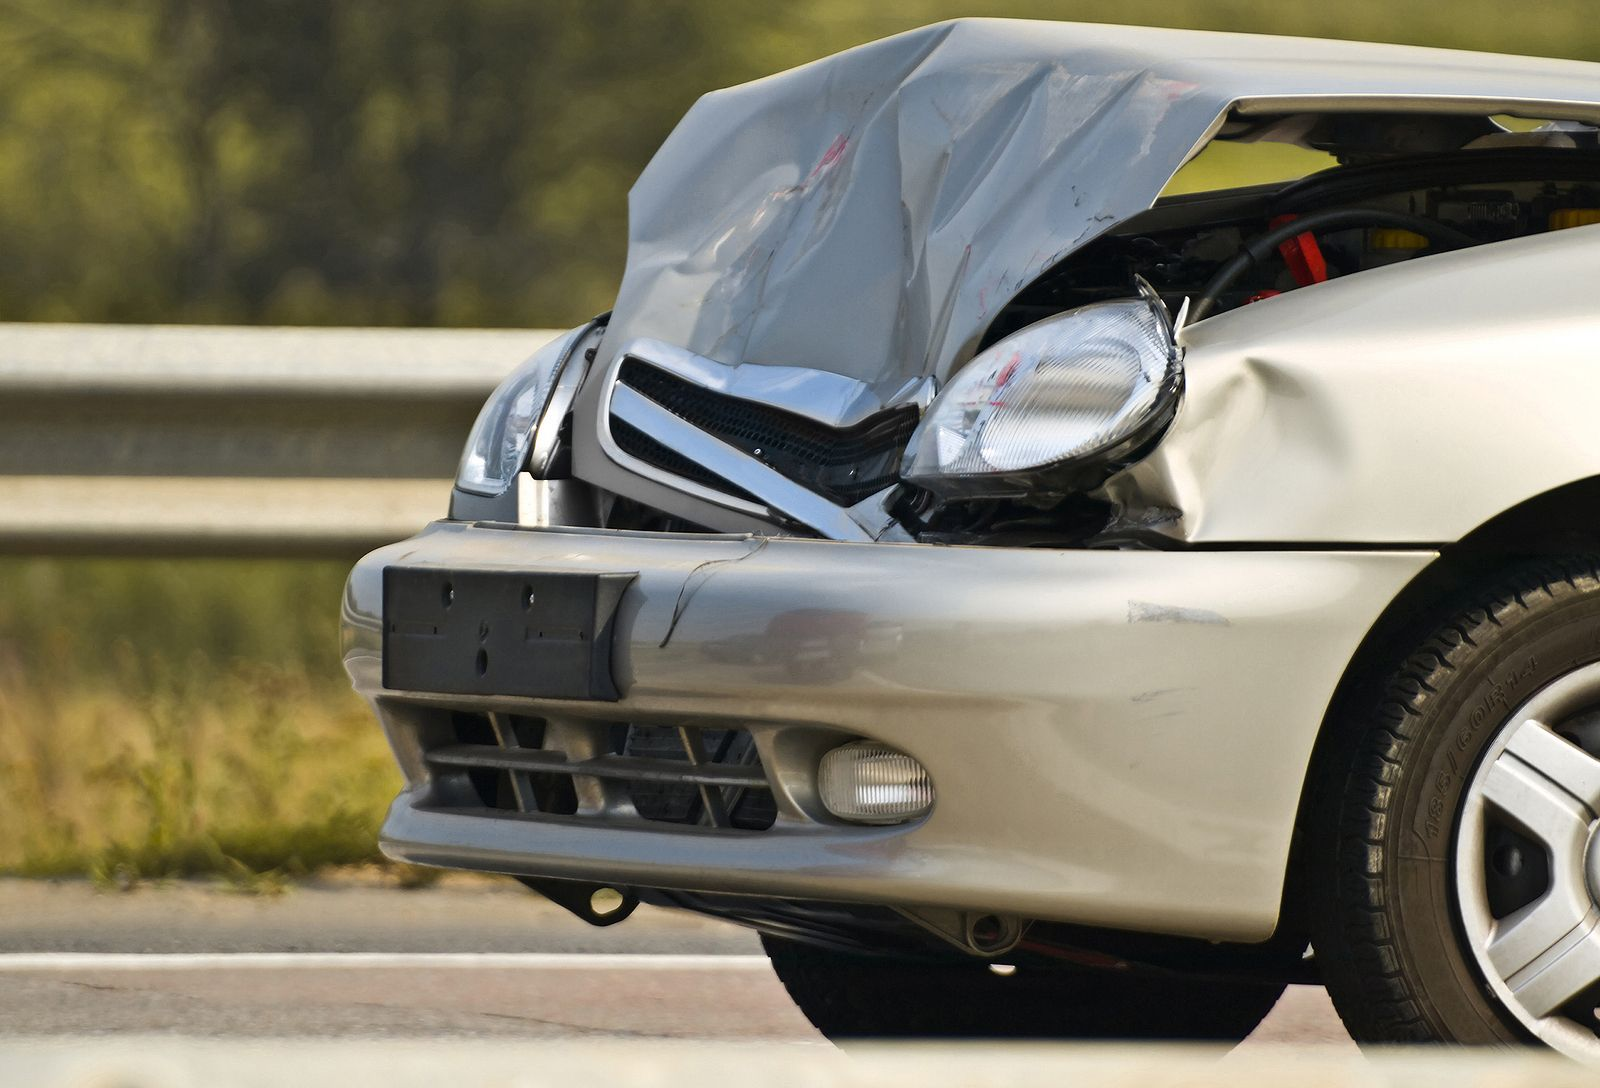 Auto Accident Attorney In Sacramento So If You Are Ever In An Auto Accident Call 9 1 1 First Contact Your Insurance Car Accident Lawyer Car Insurance Car